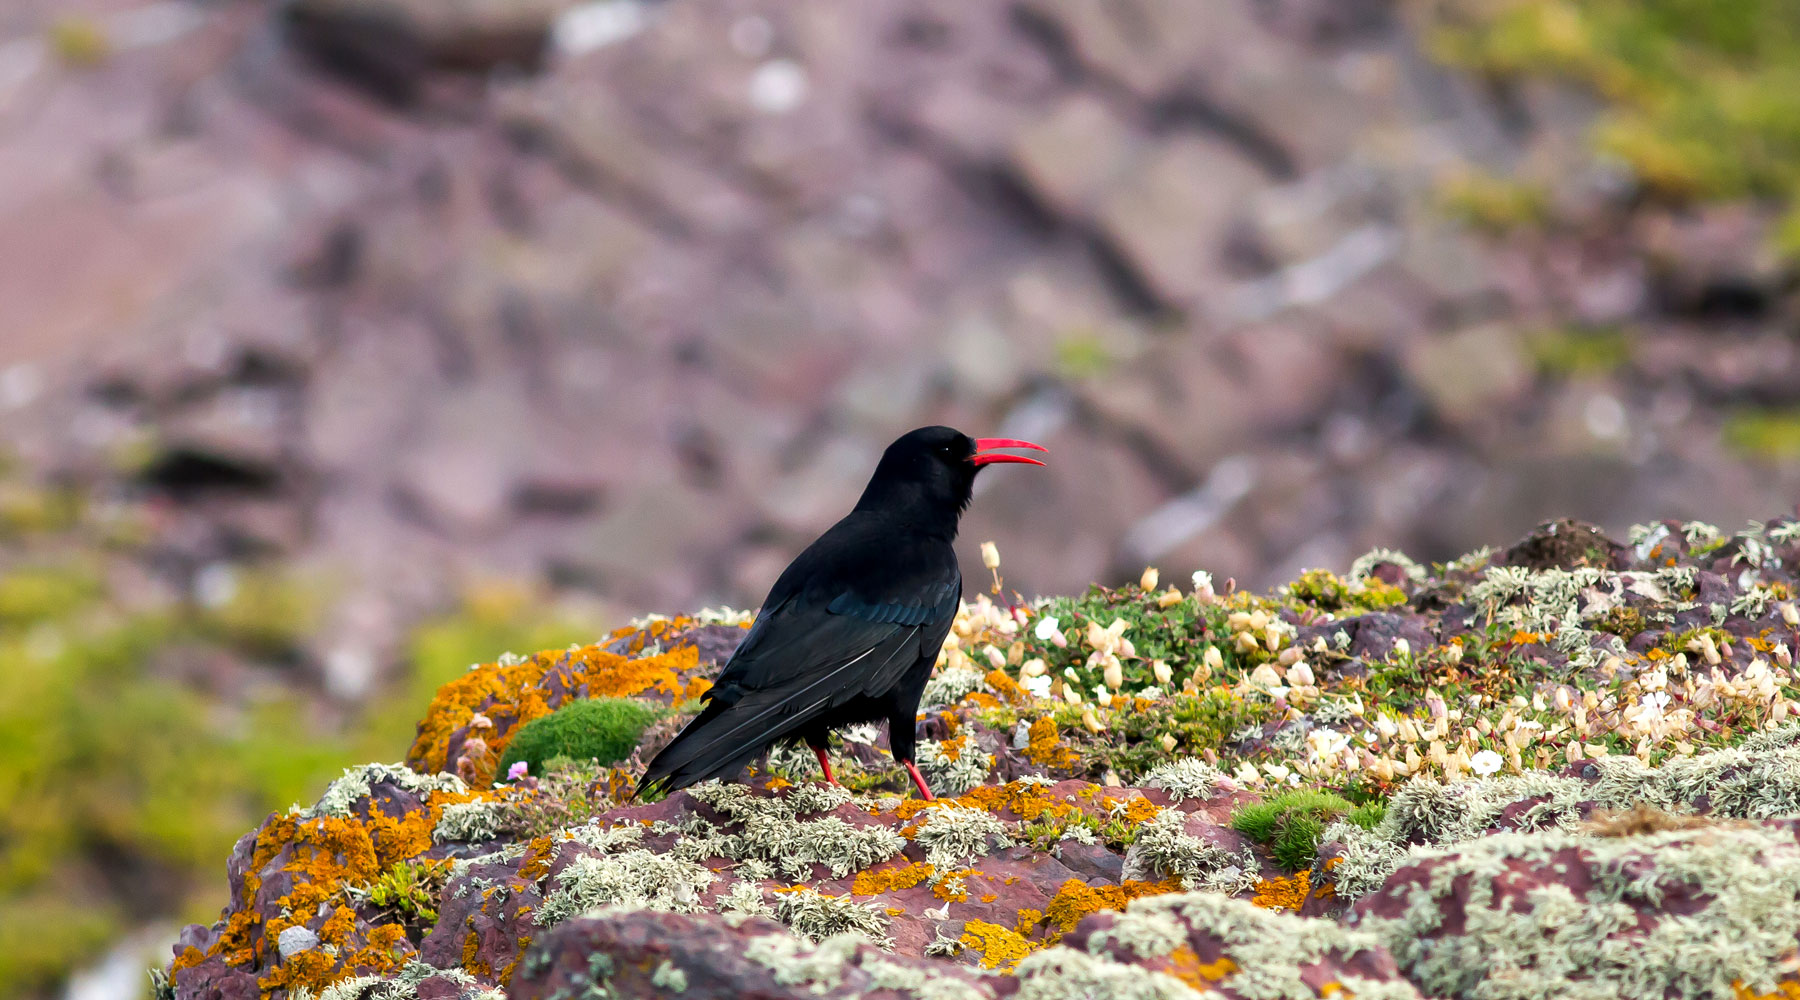 Mike Snelle | Chough